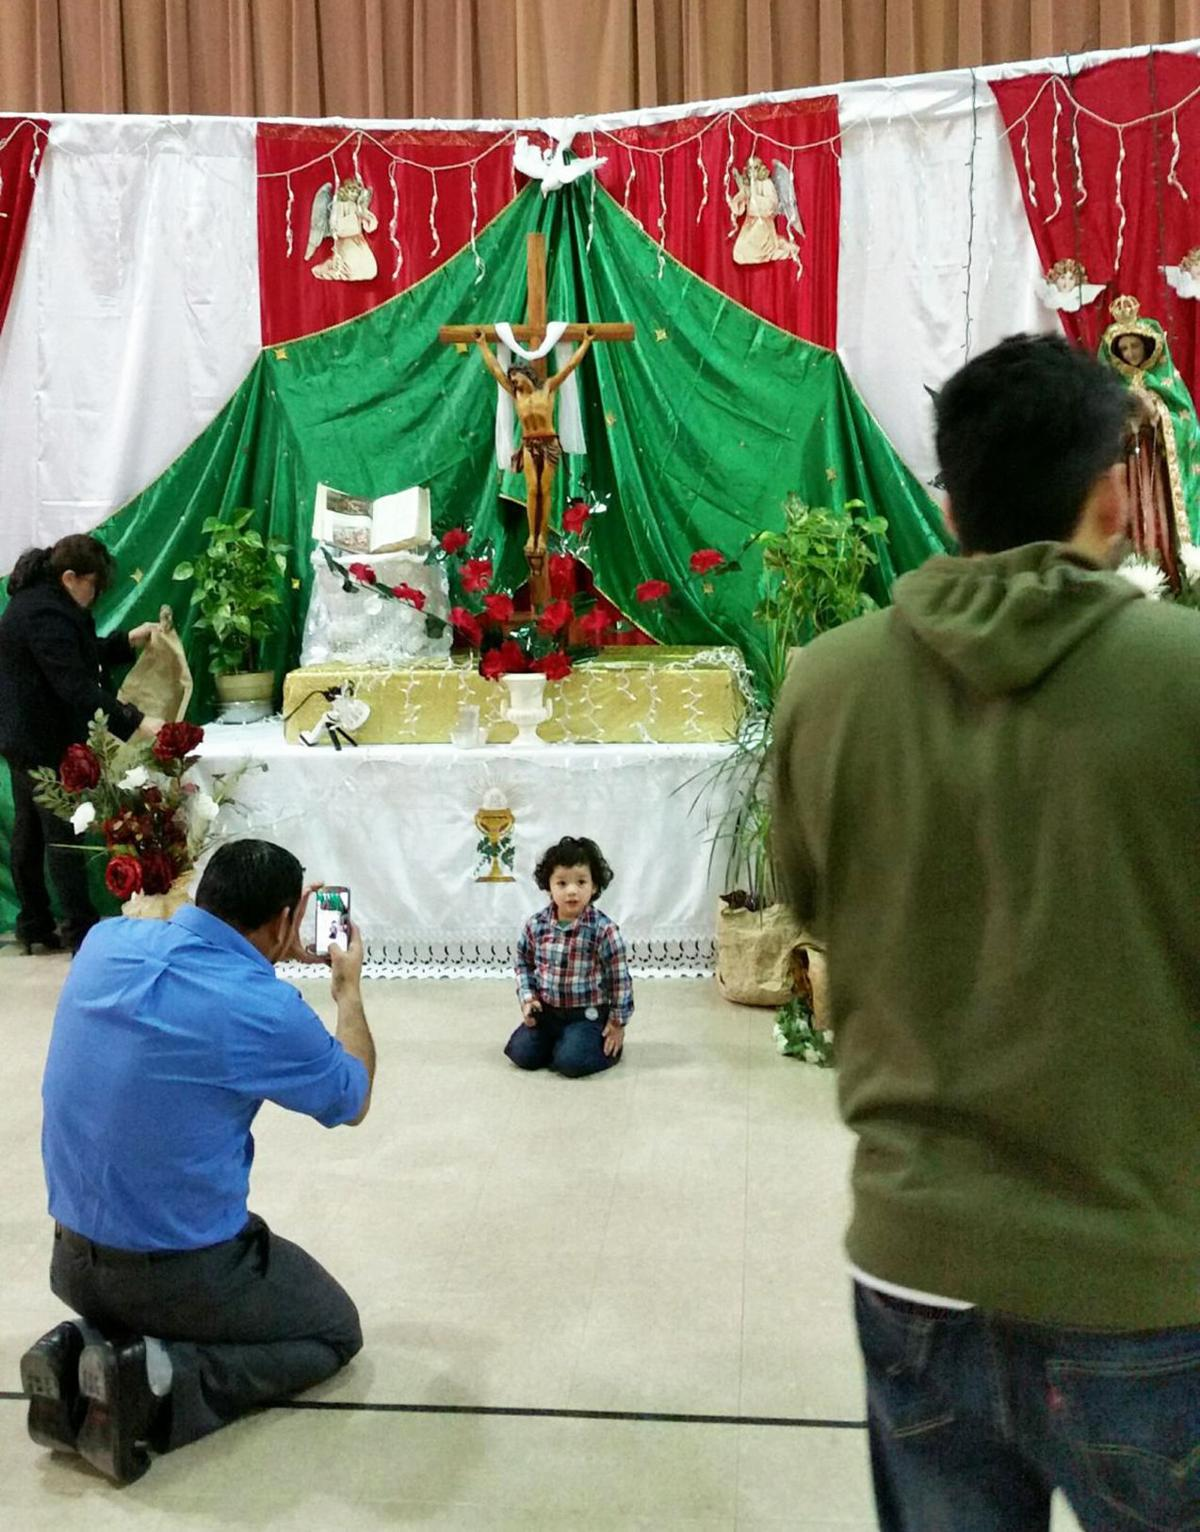 Our Lady celebration with little child